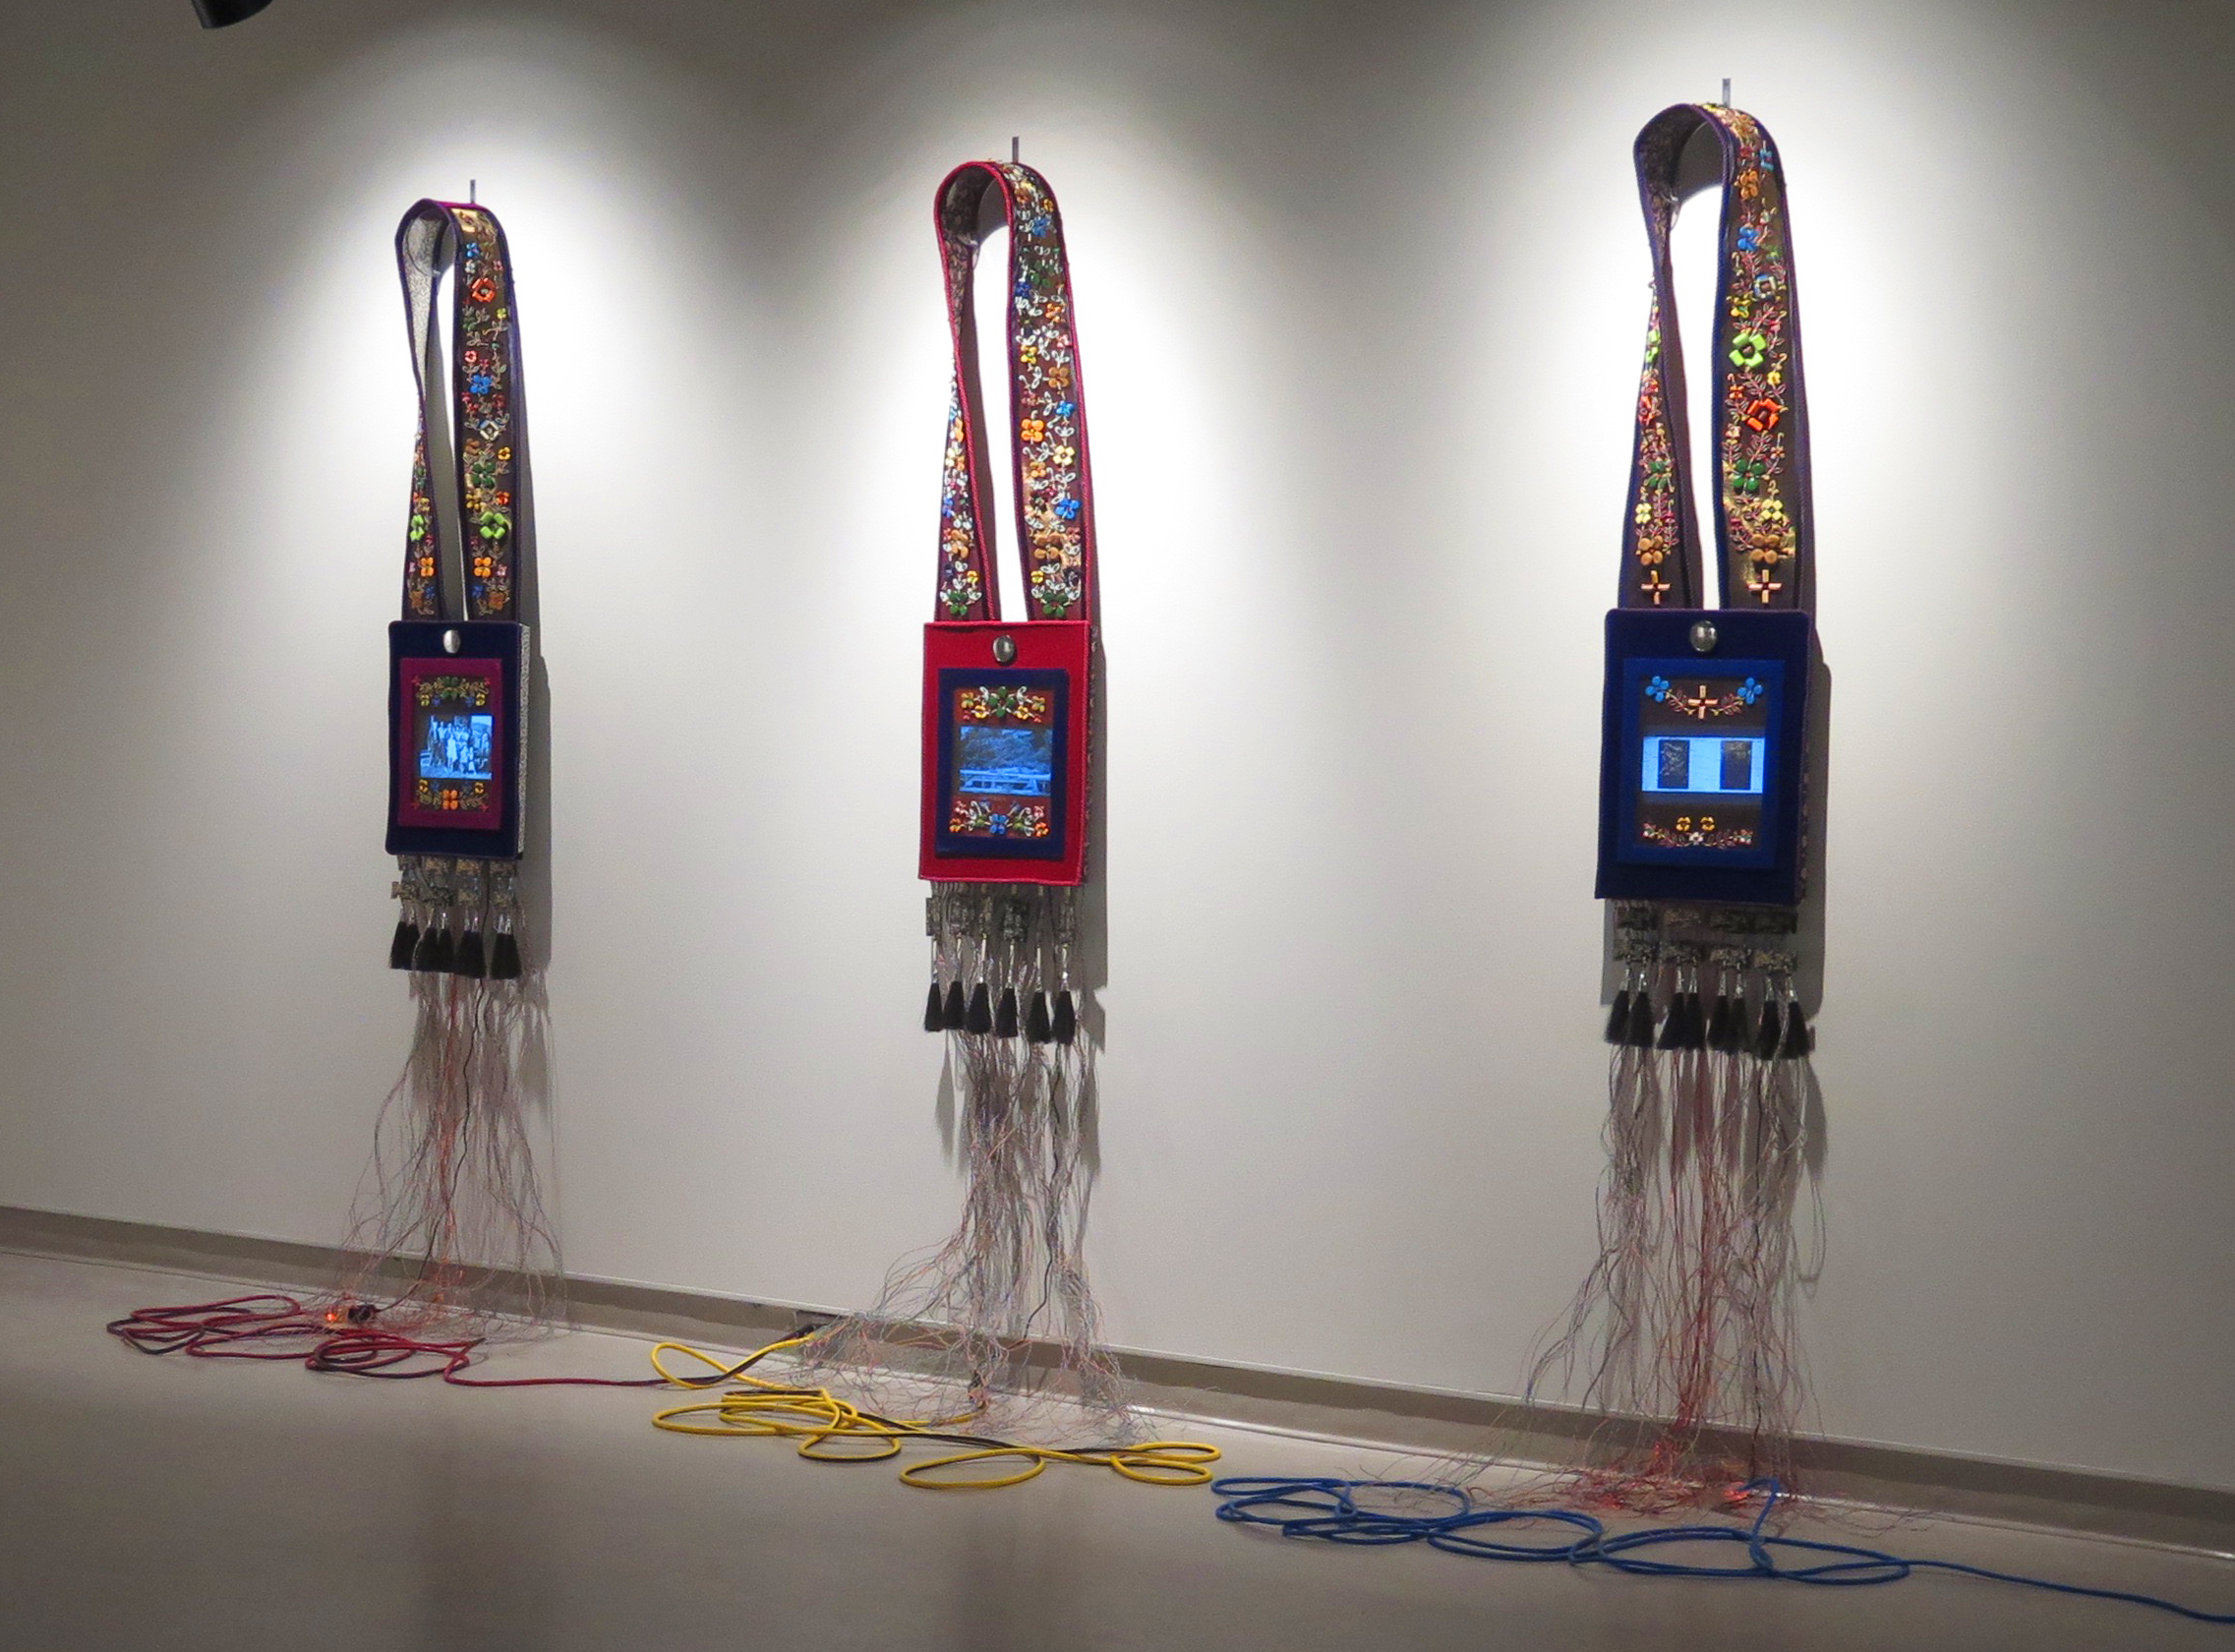 Three beaded cloth and screen installations hanging in a gallery wall